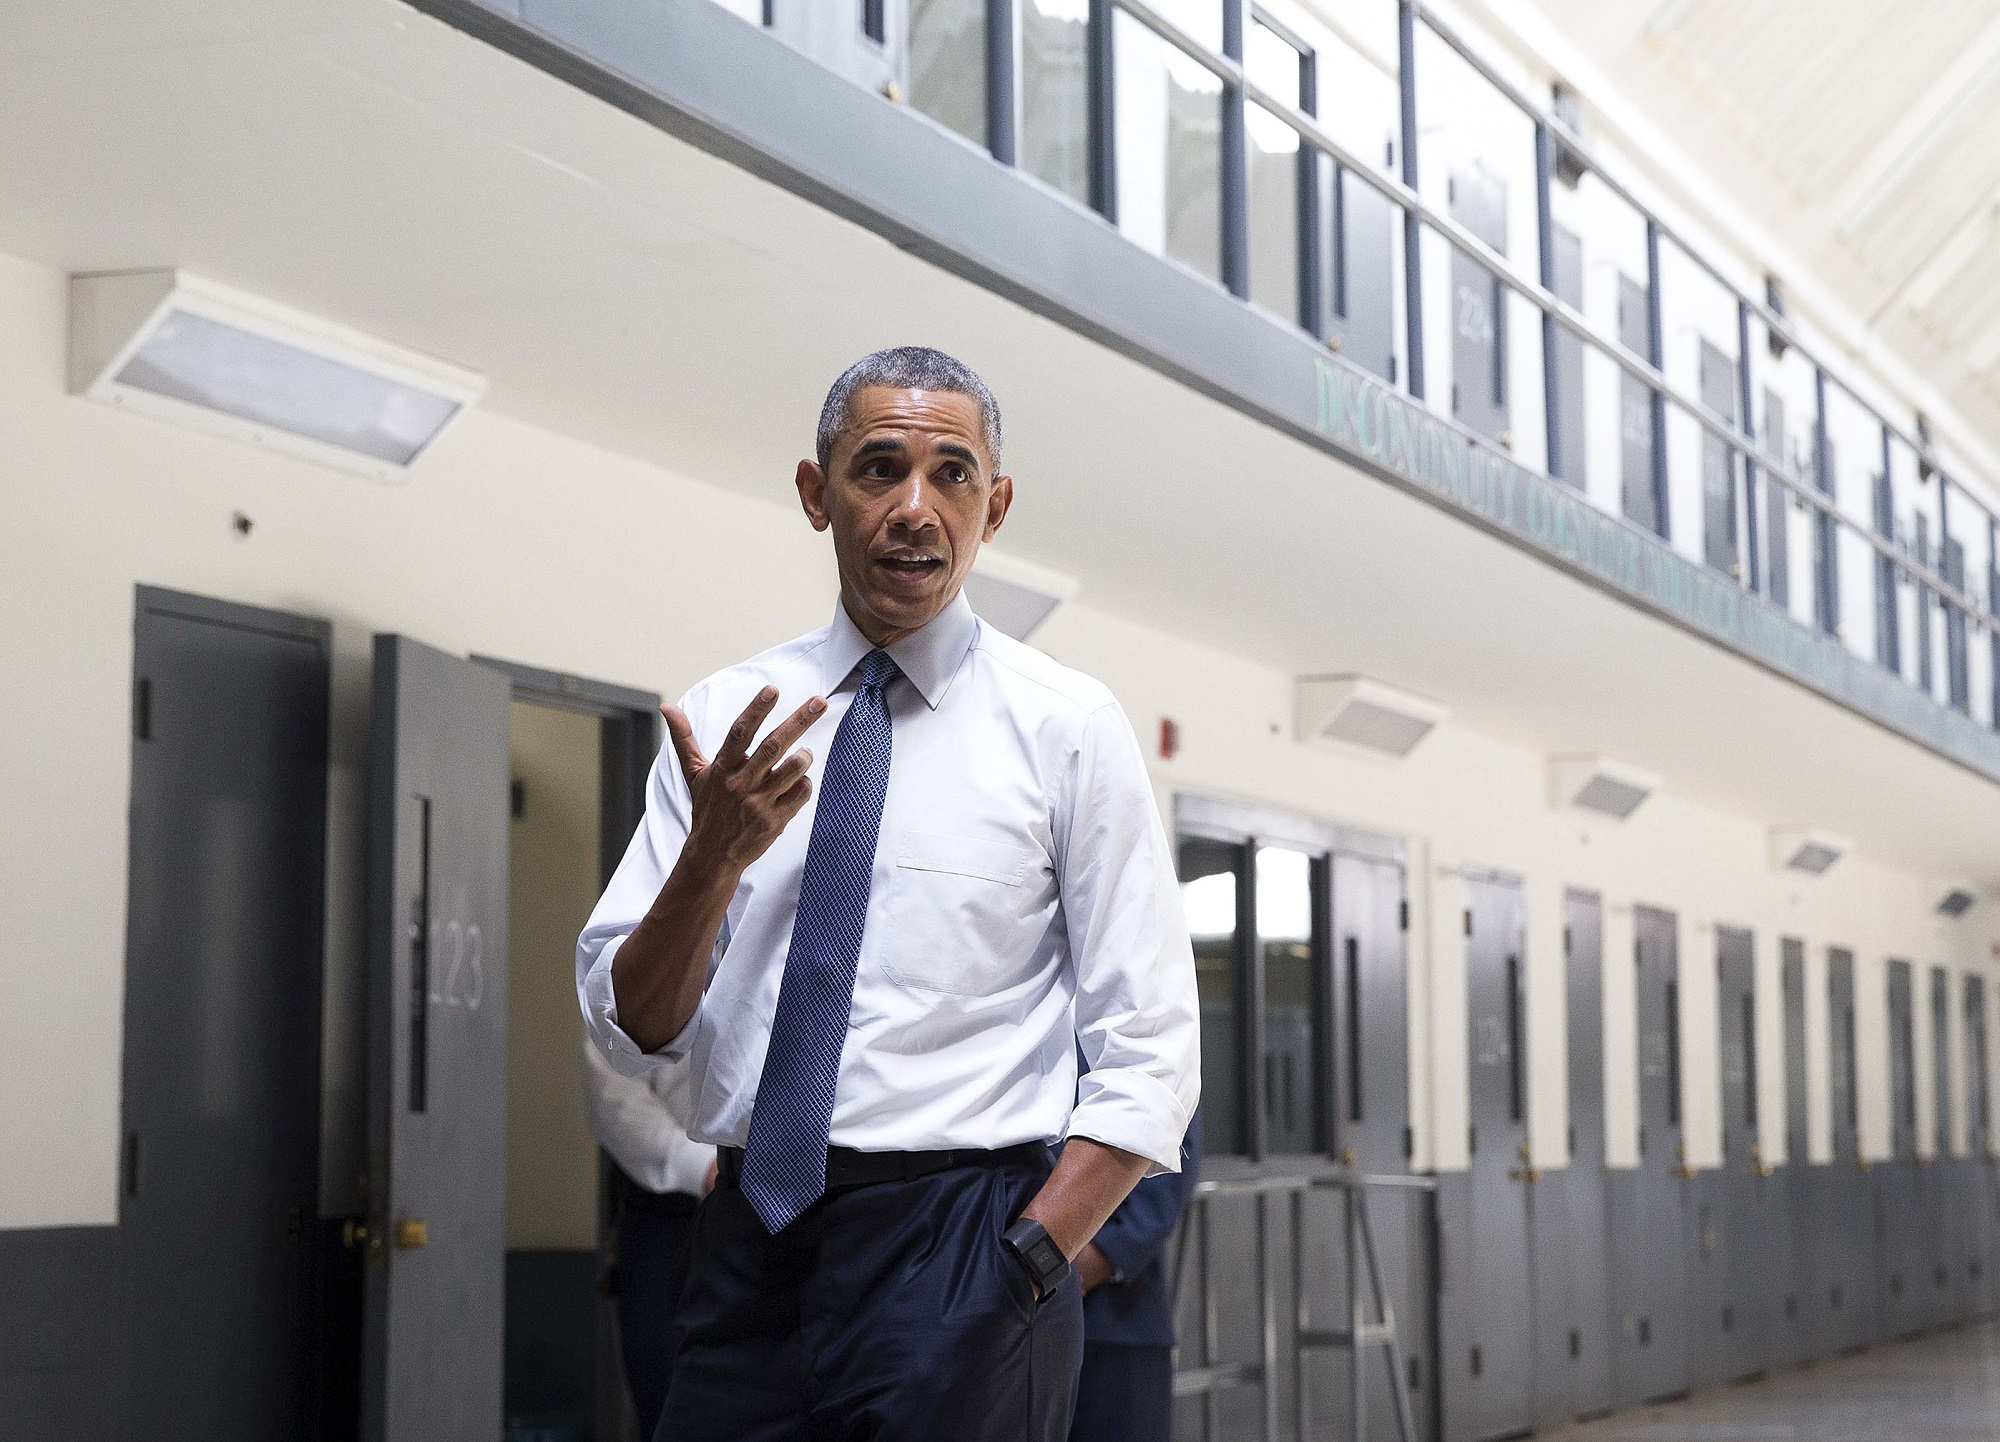 President Barack Obama visits the El Reno Federal Correctional Institution in El Reno, Okla., July 16, 2015, as part of a drive to overhaul the U.S. criminal justice system. (Doug Mills/The New York Times)